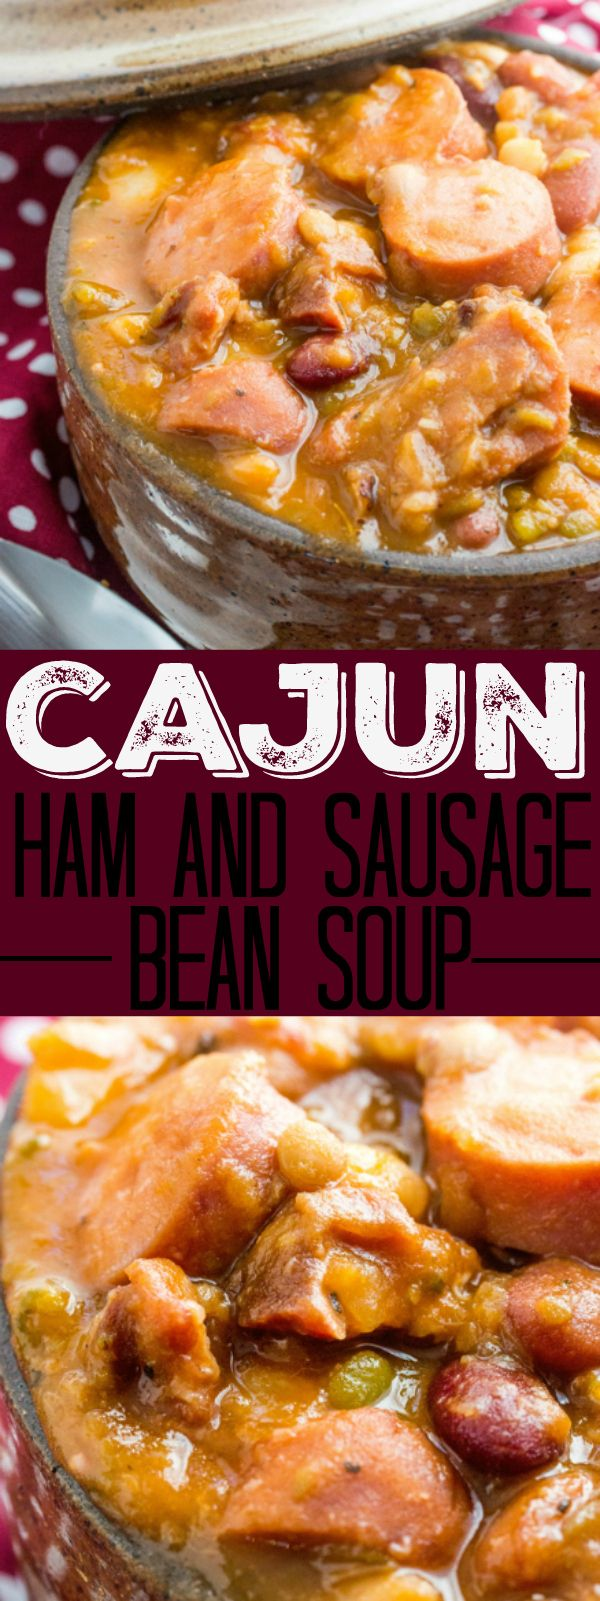 Warm up with this Cajun Ham and Sausage Bean Soup! Spicy, meaty and delicious this is one soup that will fill you up just on looks alone! I love soup! And it doesn't necessarily have to be just around the winter time either. I'm a soup and chili gal all[Read more]